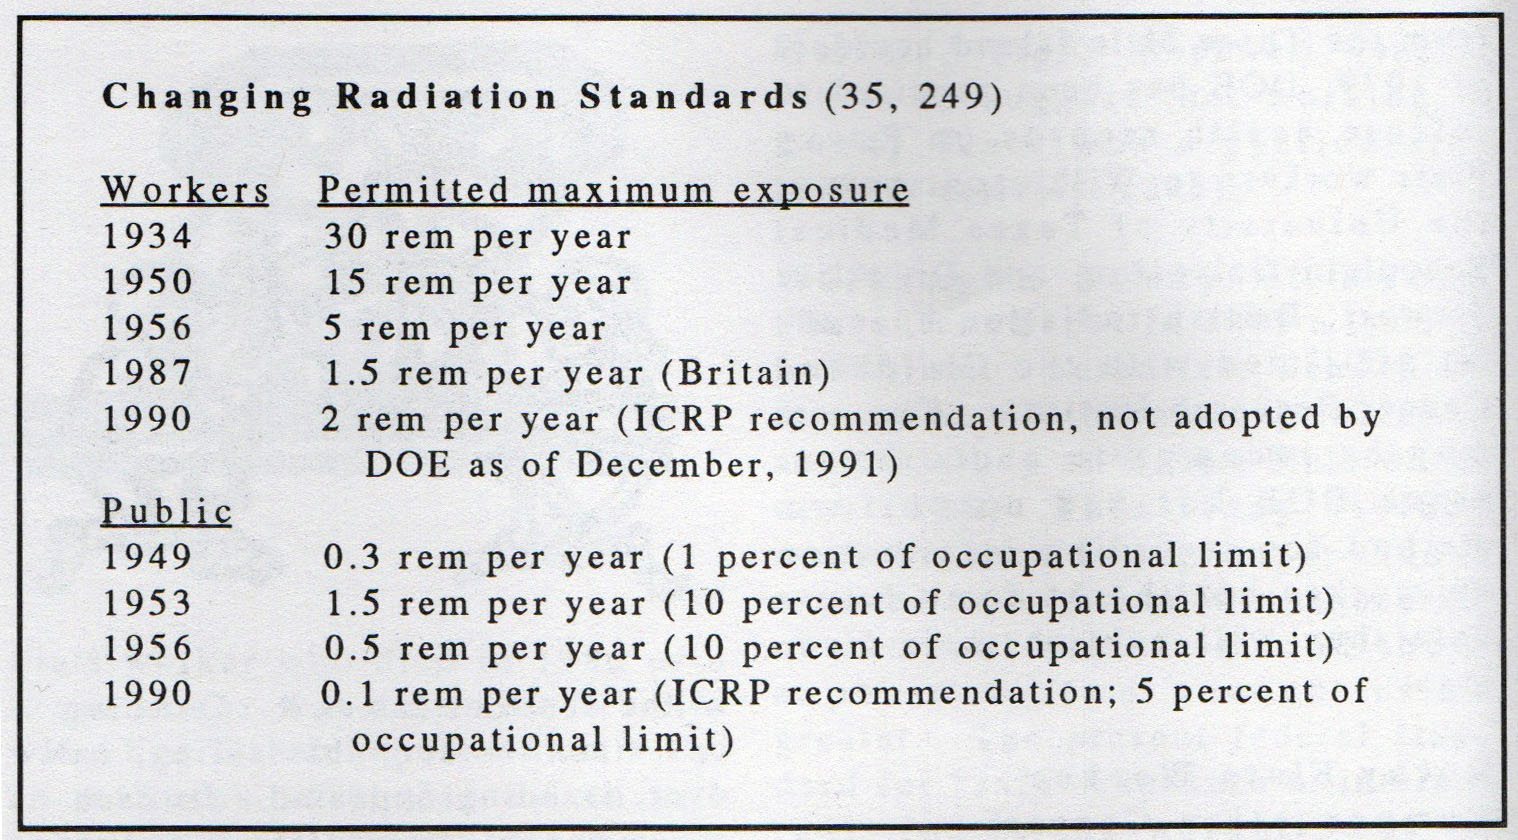 Page 22 Changing Radiation Standards.jpg